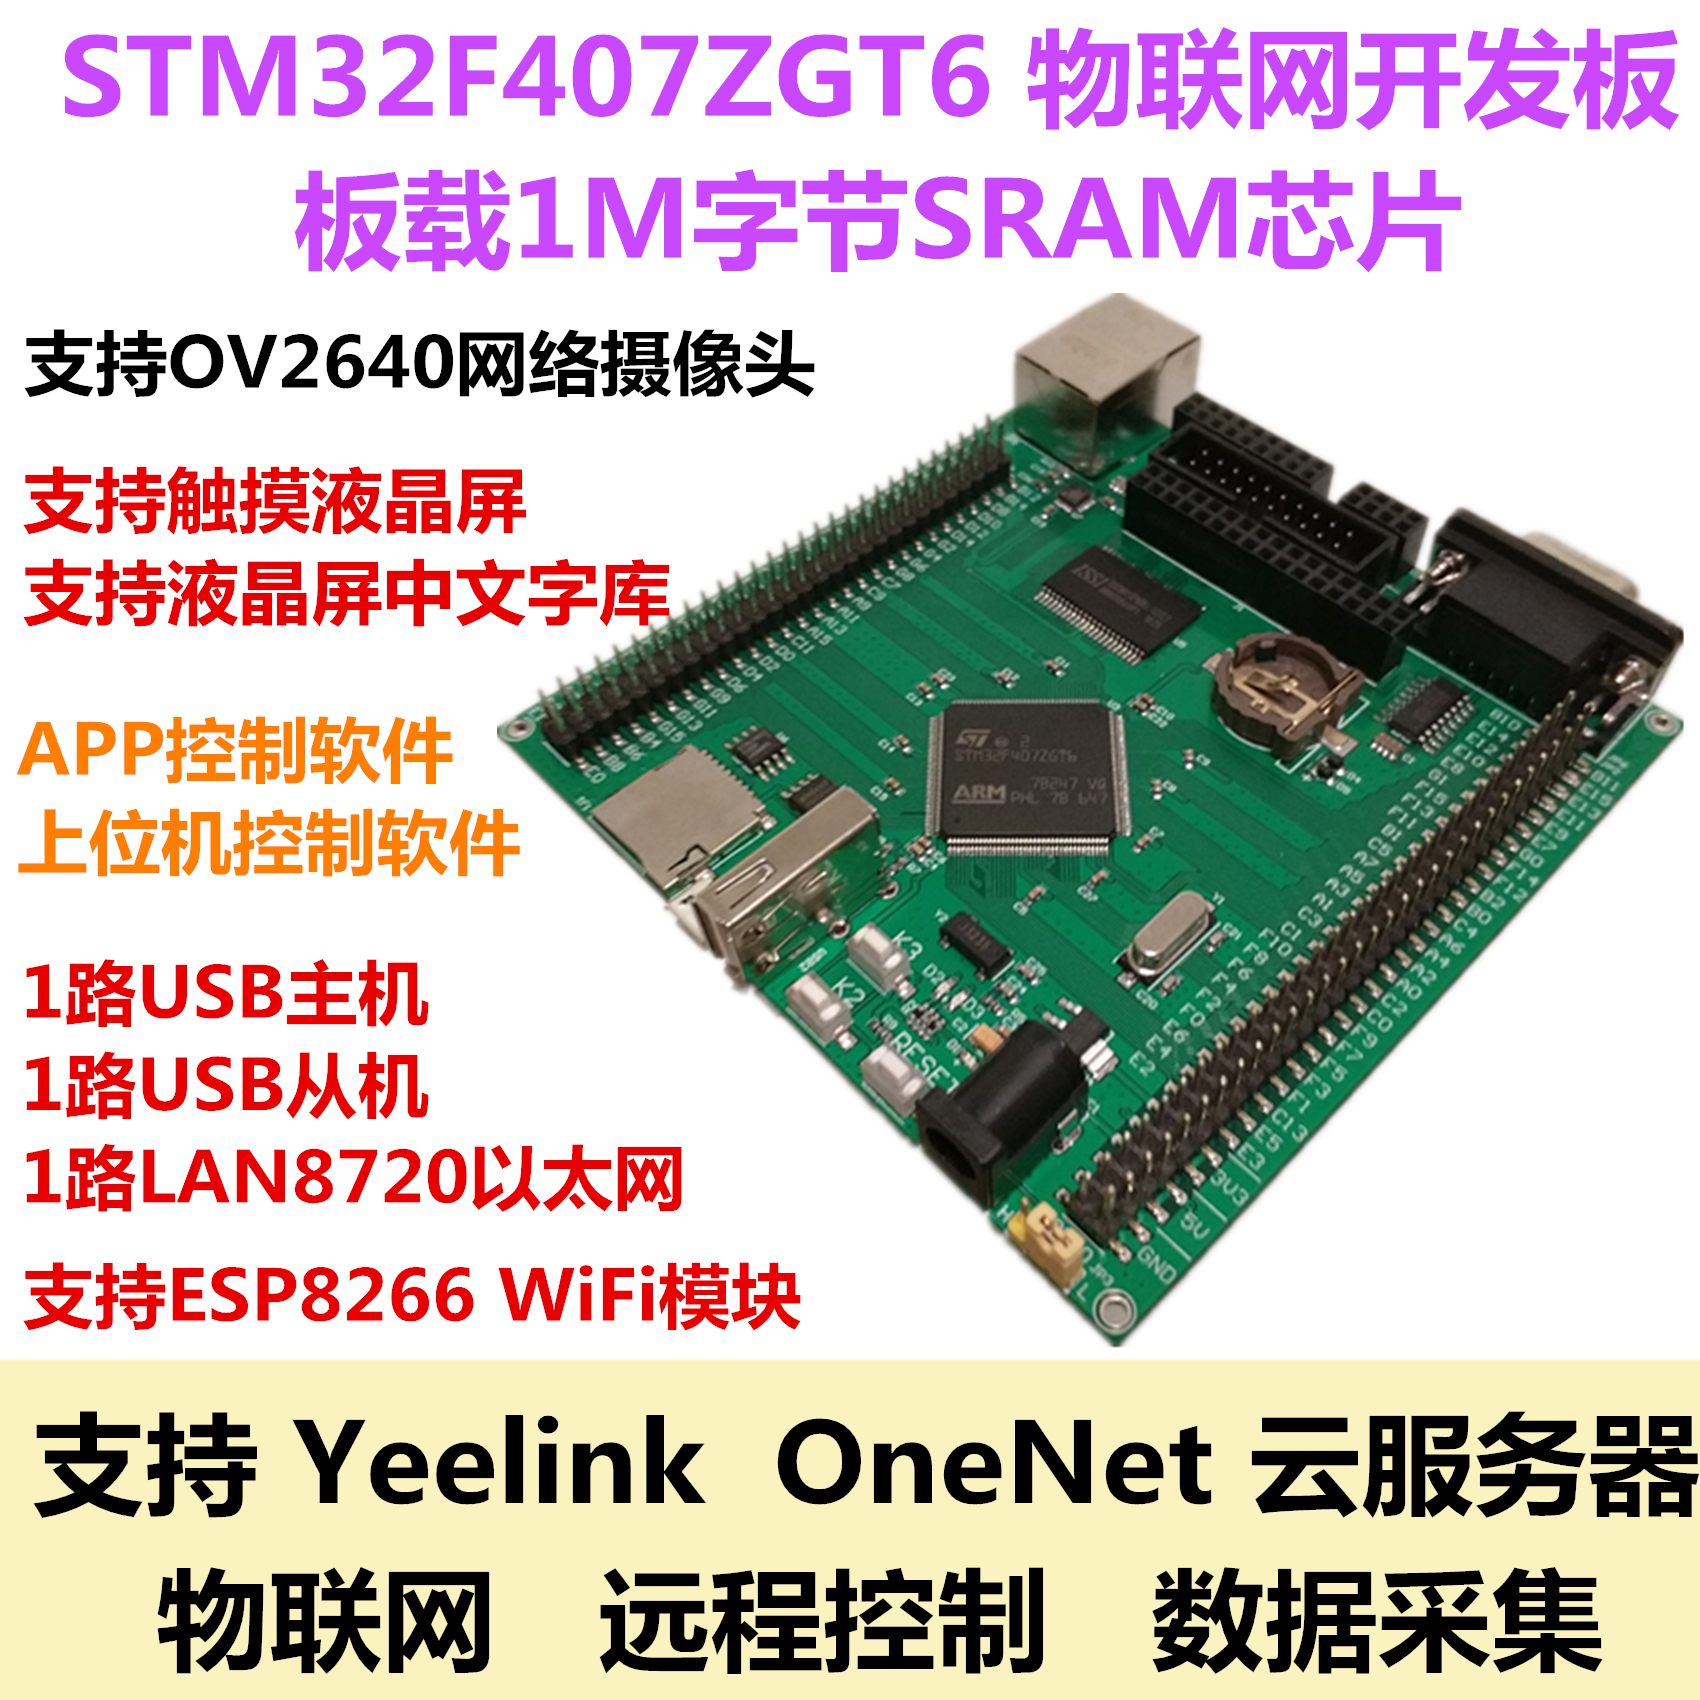 Internet of Things, WiFi Stm32f407zgt6 Development Board, Remote Control, Cloud Server, Intelligent Things lua wifi nodemcu internet of things development board based on cp2102 esp8266